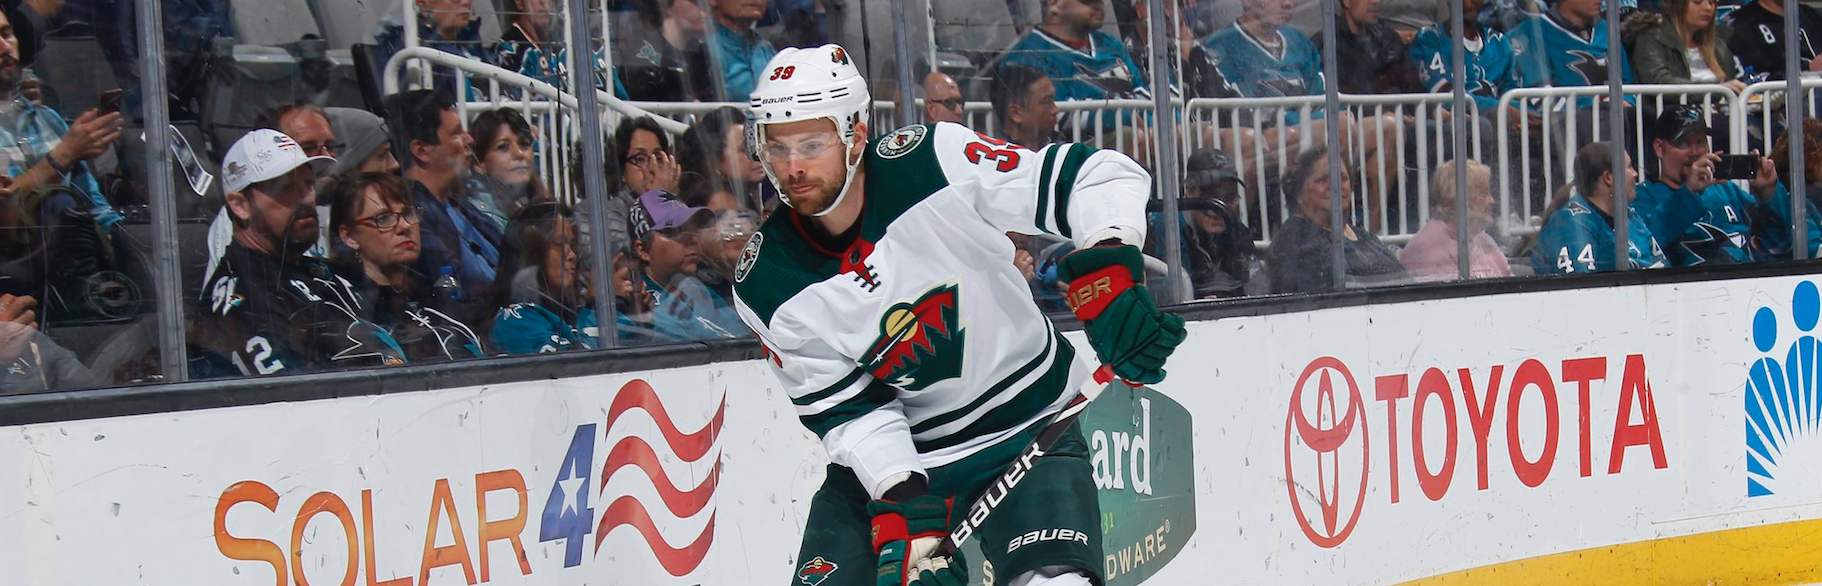 MINNESOTA WILD ASSIGNS DEFENSEMAN NATE PROSSER TO IOWA ON A CONDITIONING ASSIGNMENT